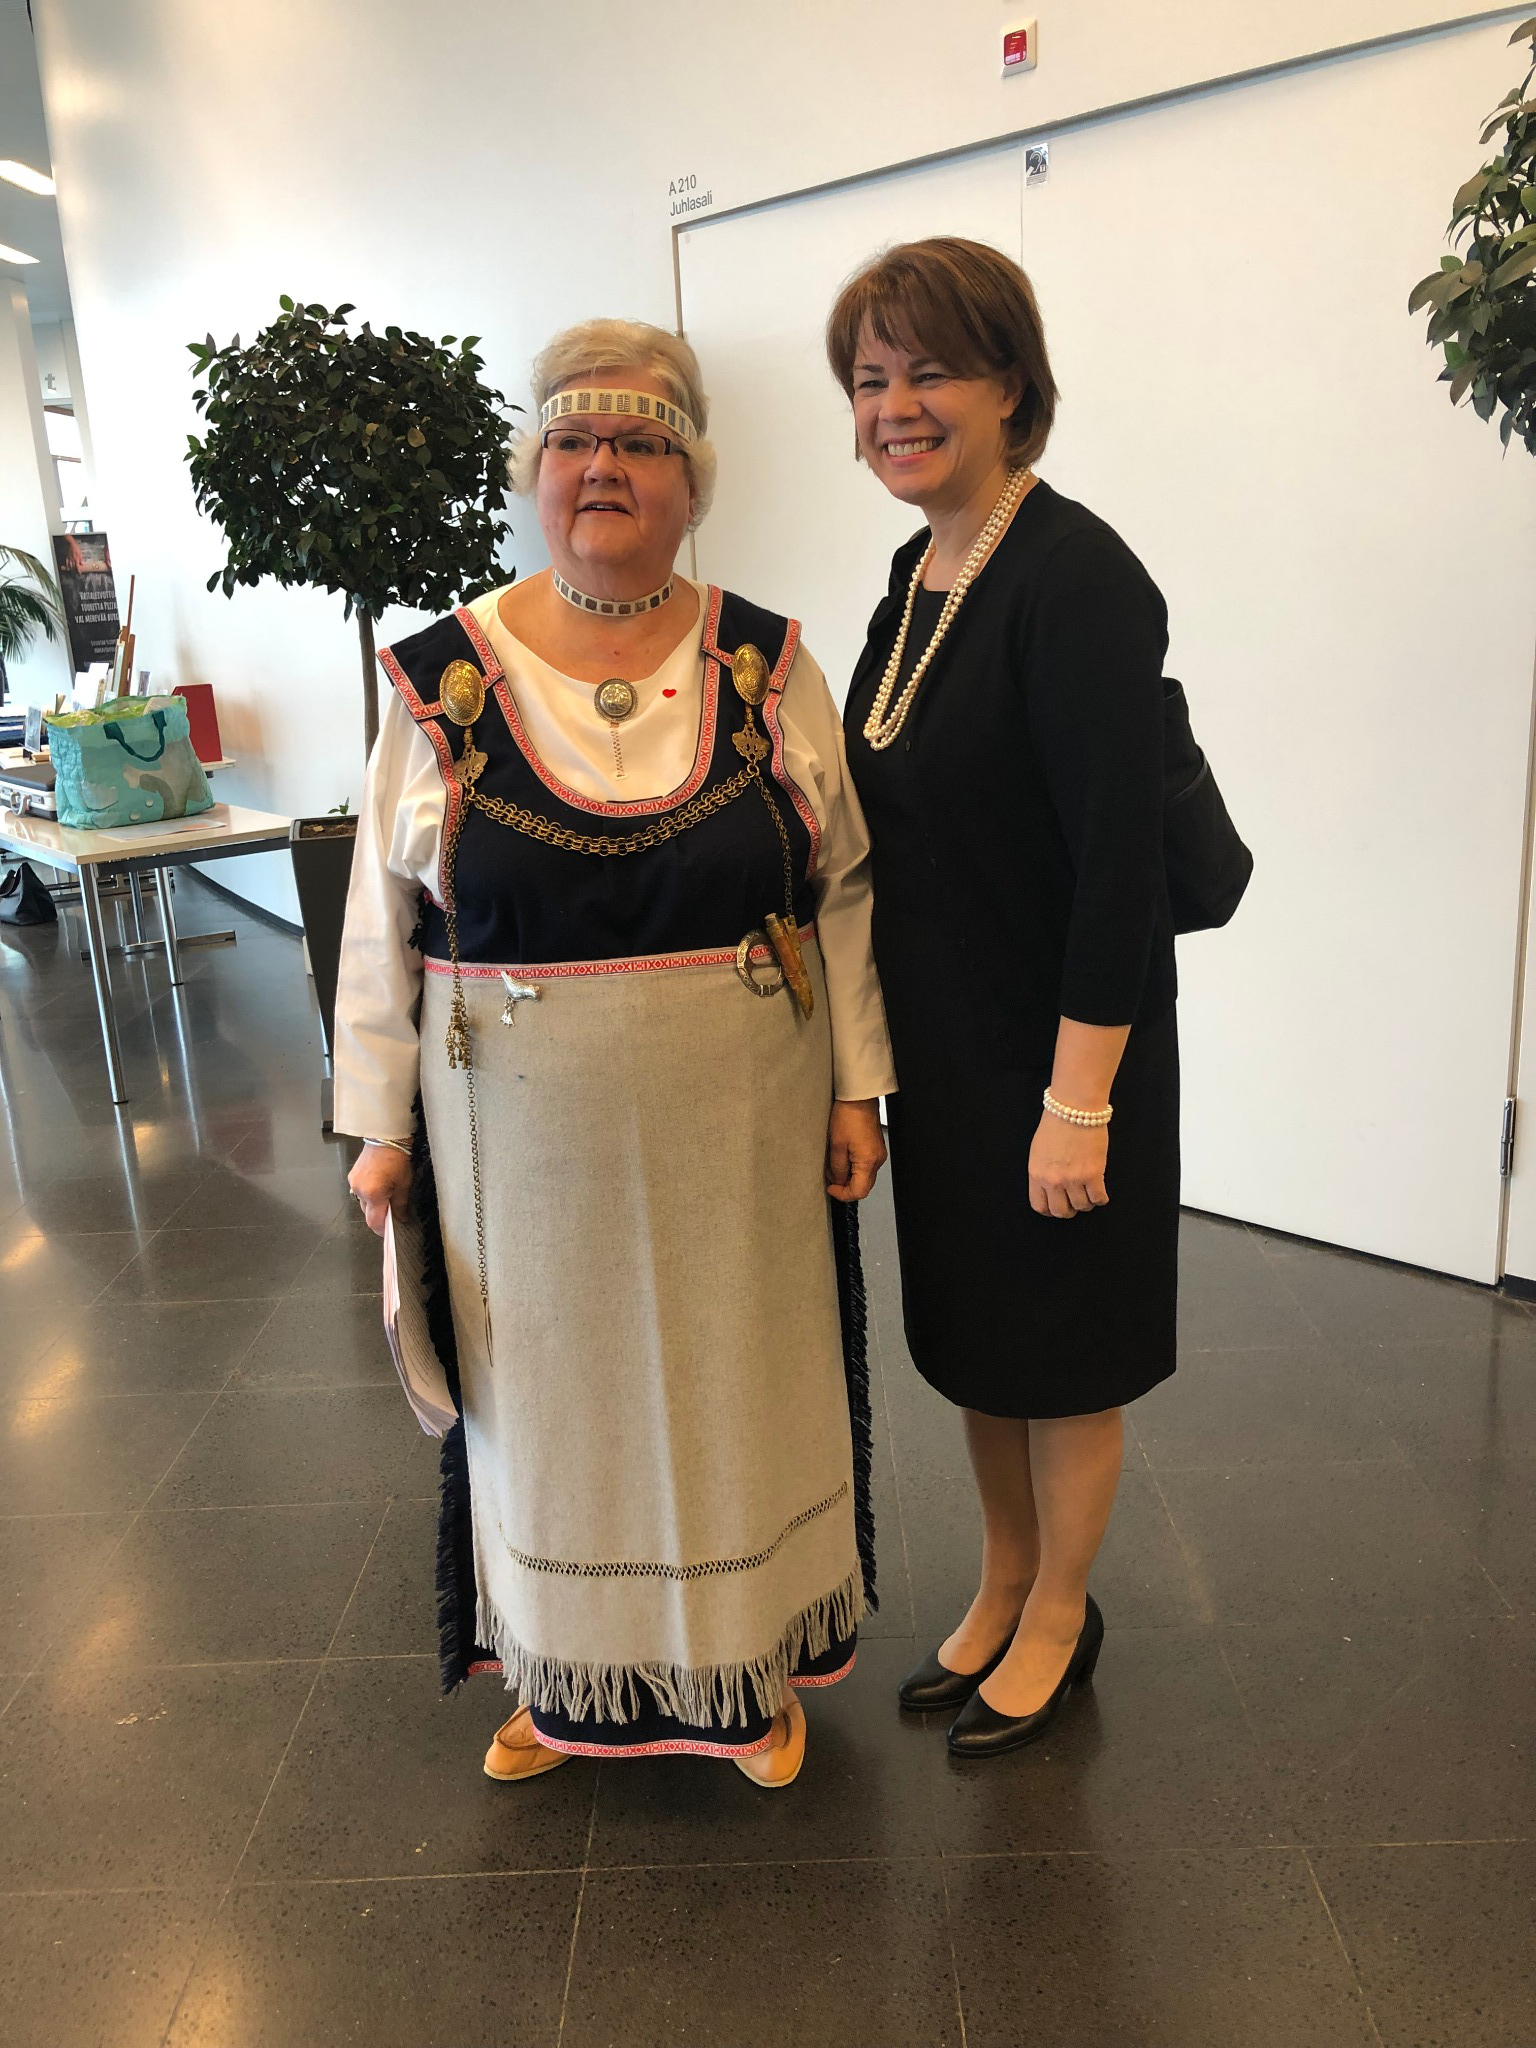 Sister Sharon Eubank visits with a woman in traditional Finnish dress at a women's conference in Tampere, Finland, Saturday, September 21, 2019.